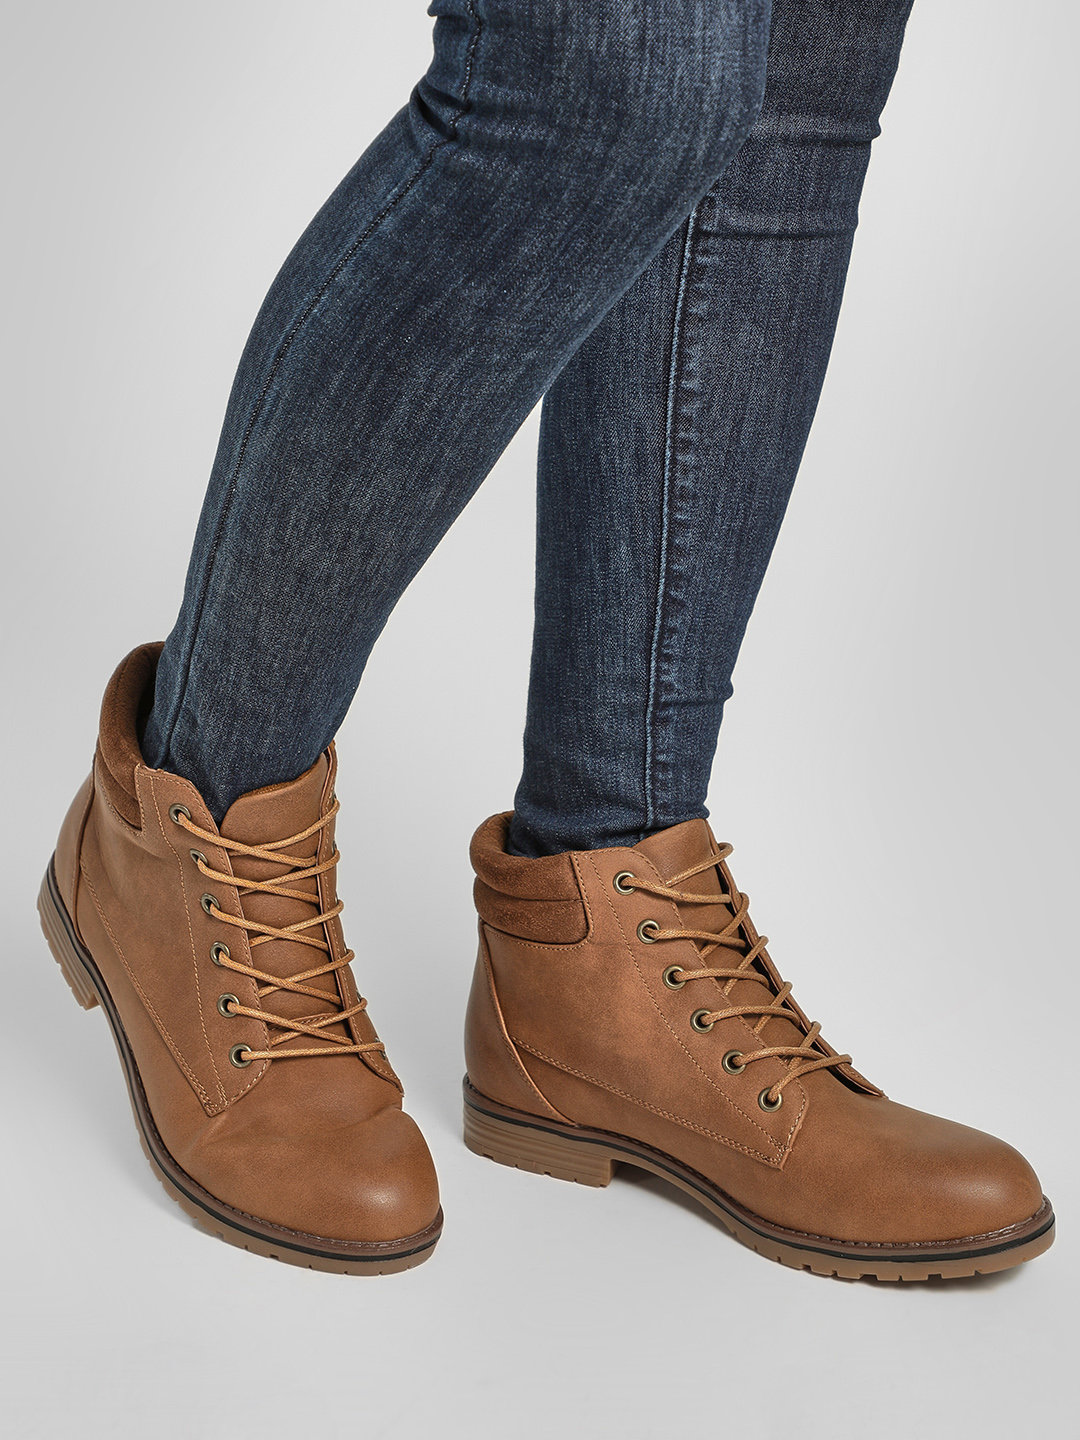 New Look Brown Suede Finish Casual Boots 1